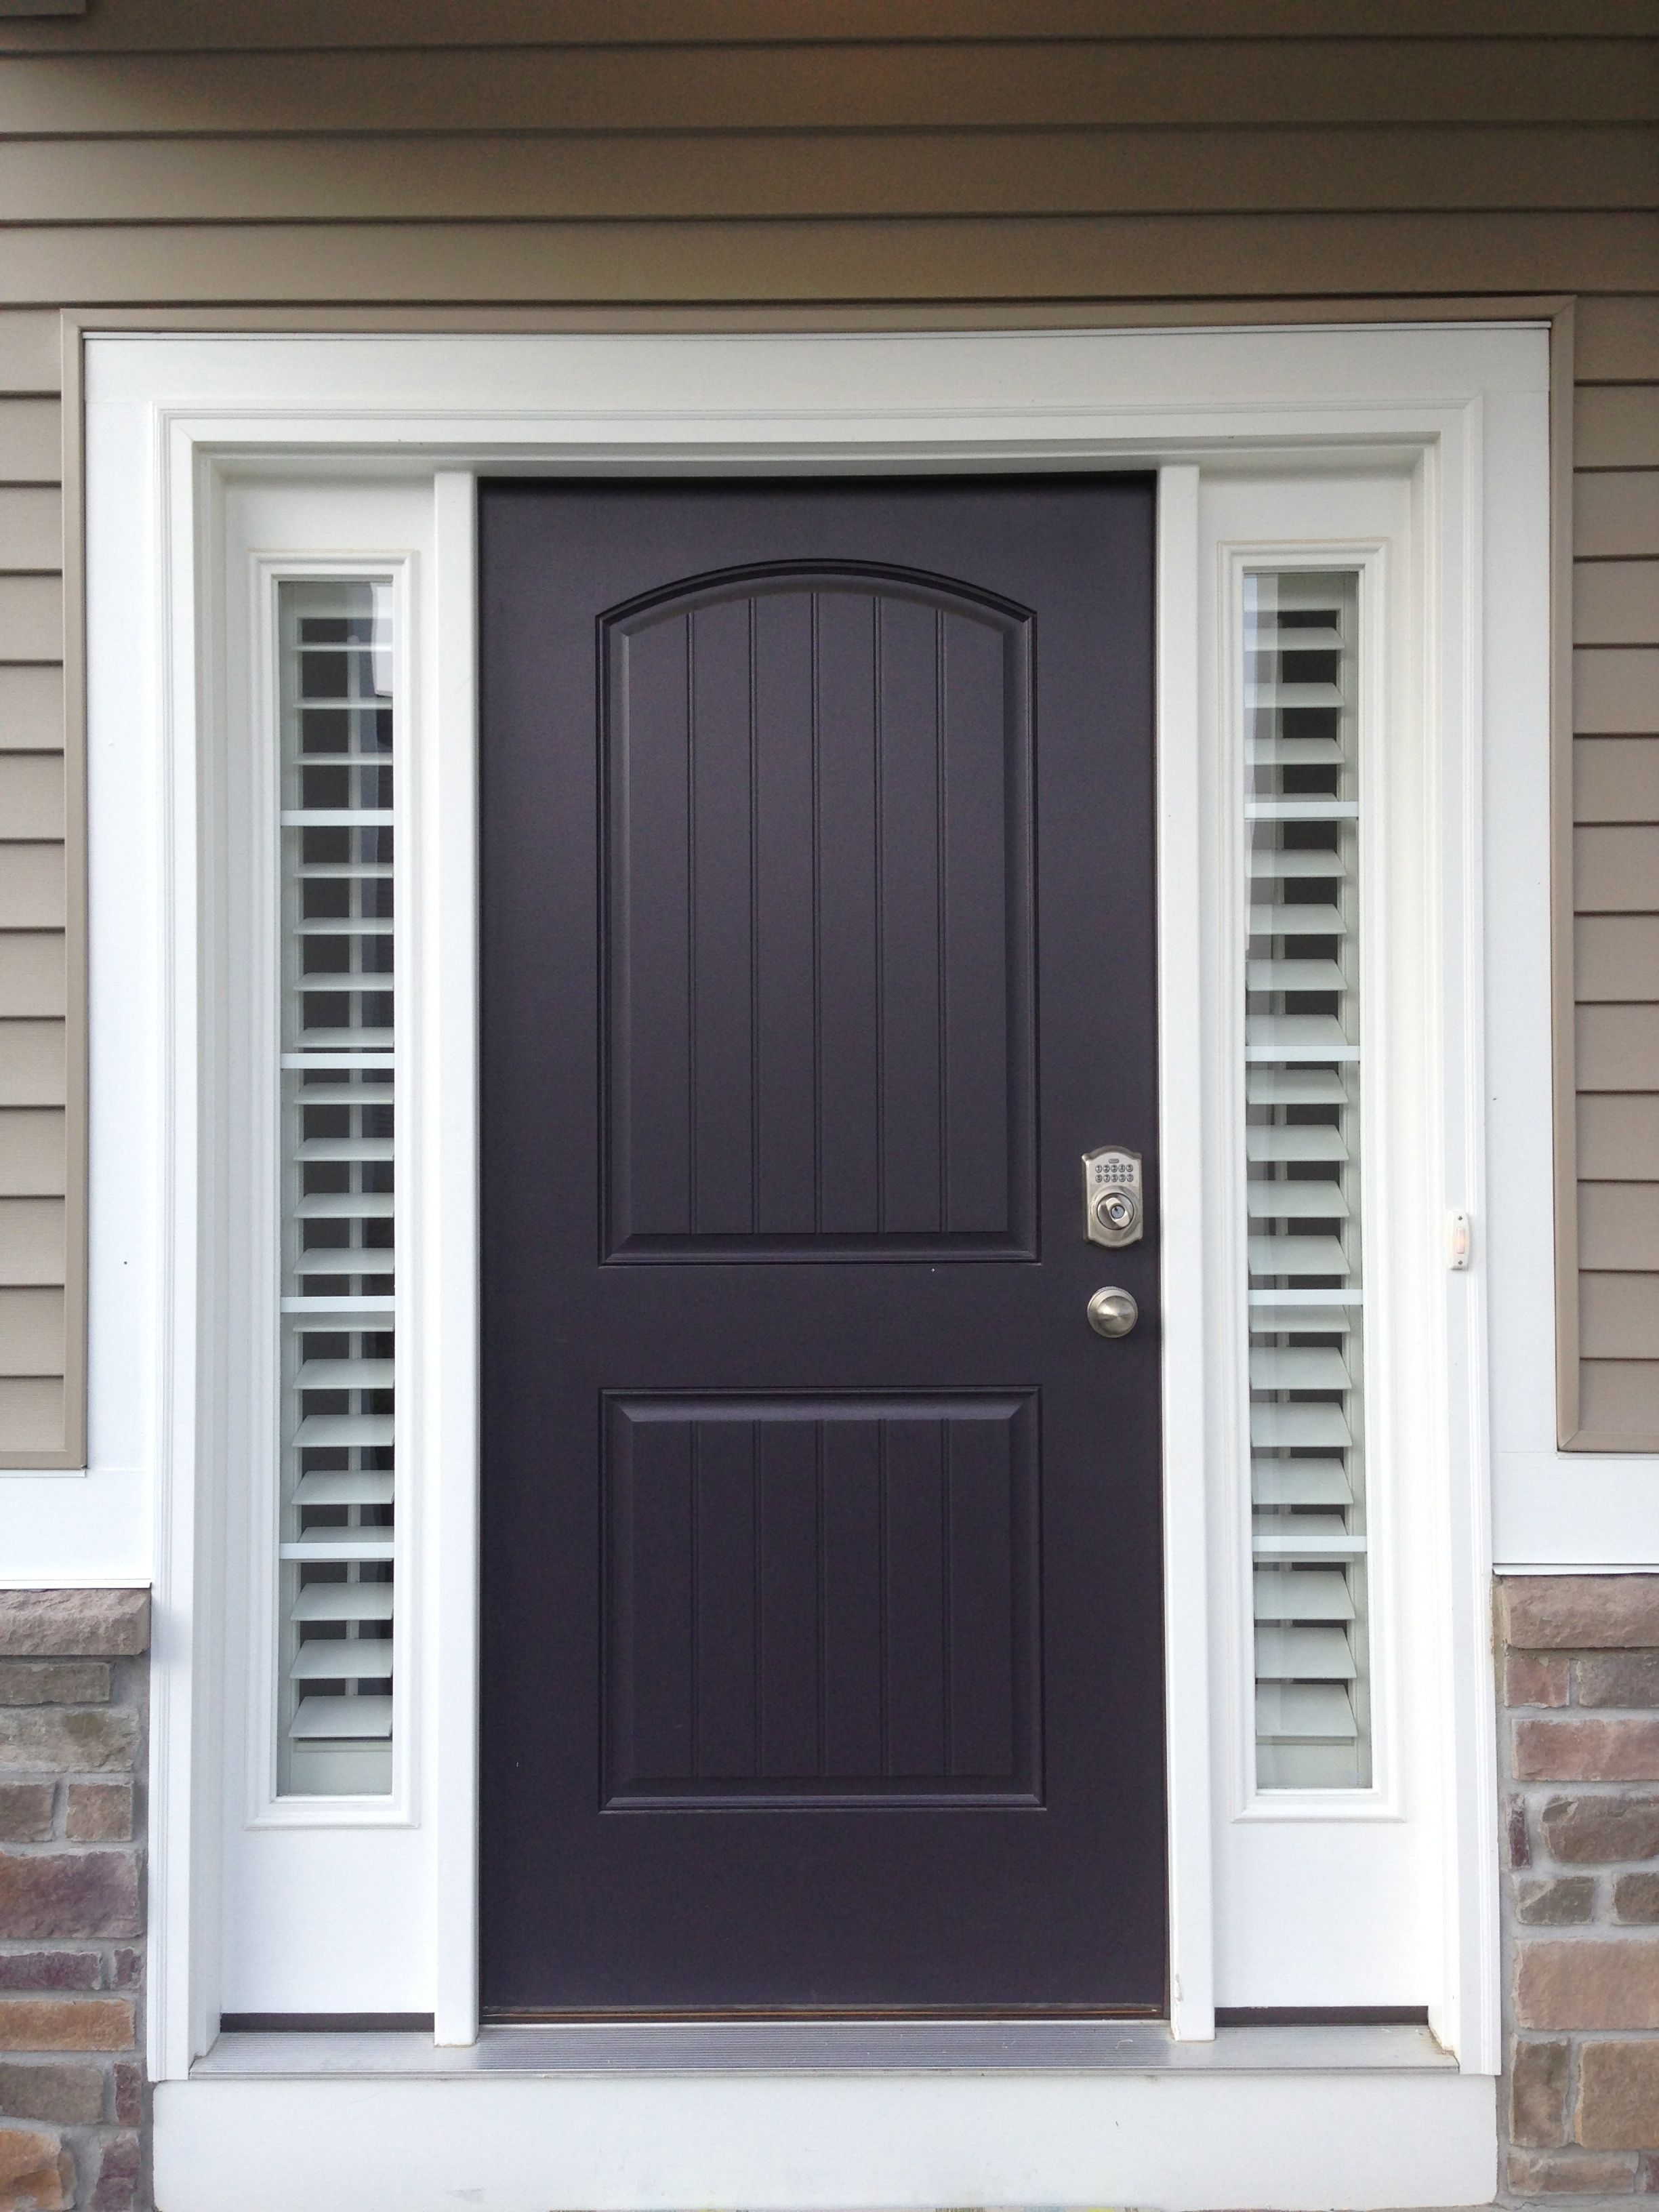 Entrance Door With Window Of Entry Door Sidelight Window Shutters Sunburst Shutters